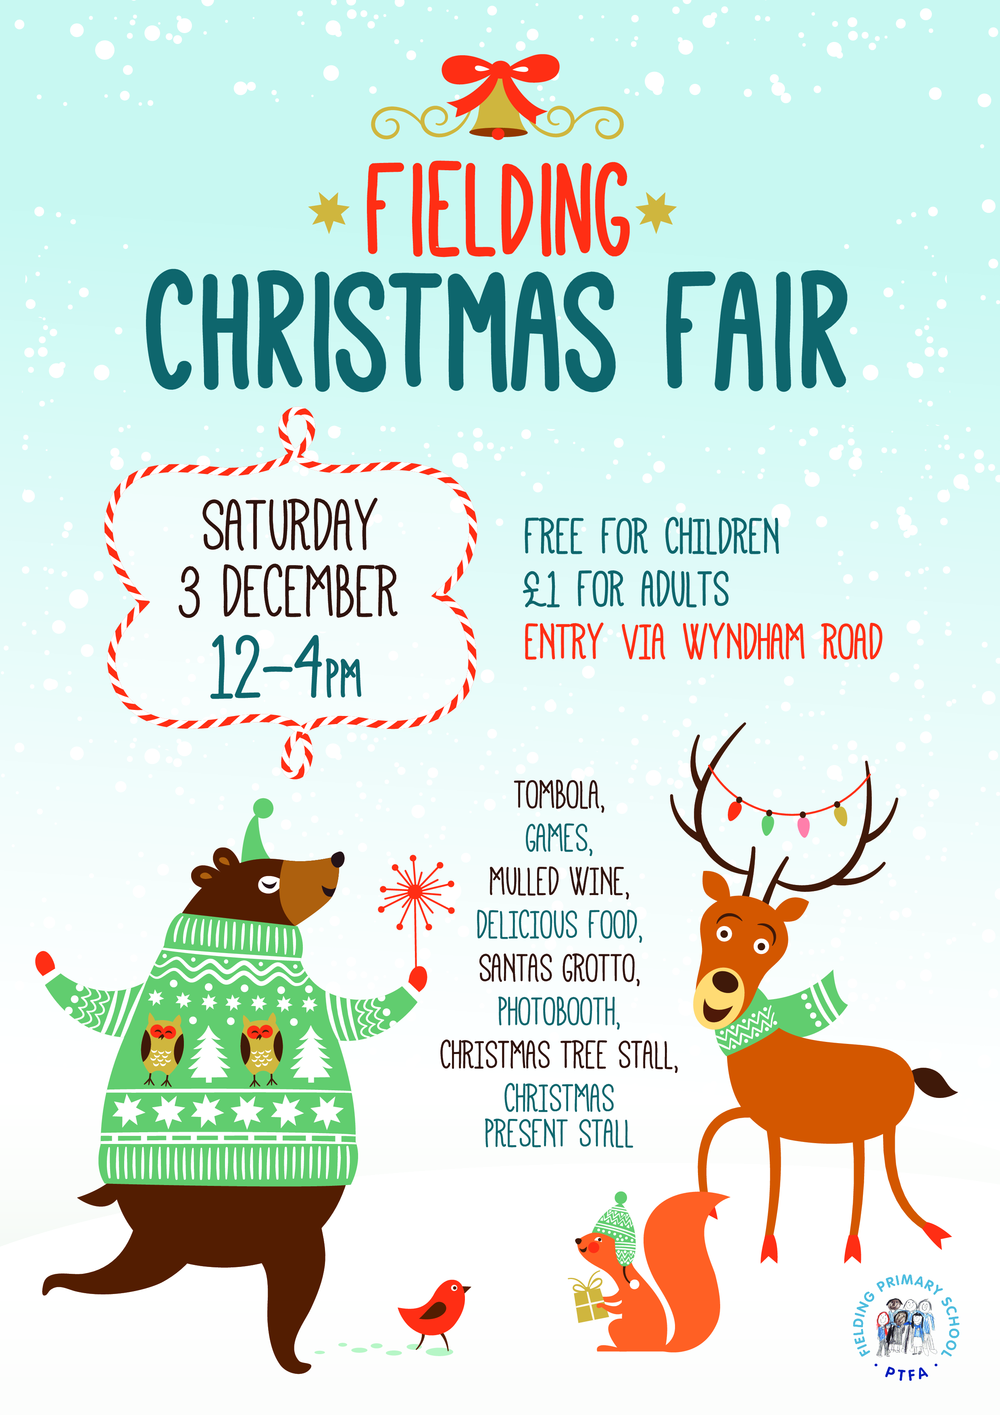 The Fielding Christmas Fair